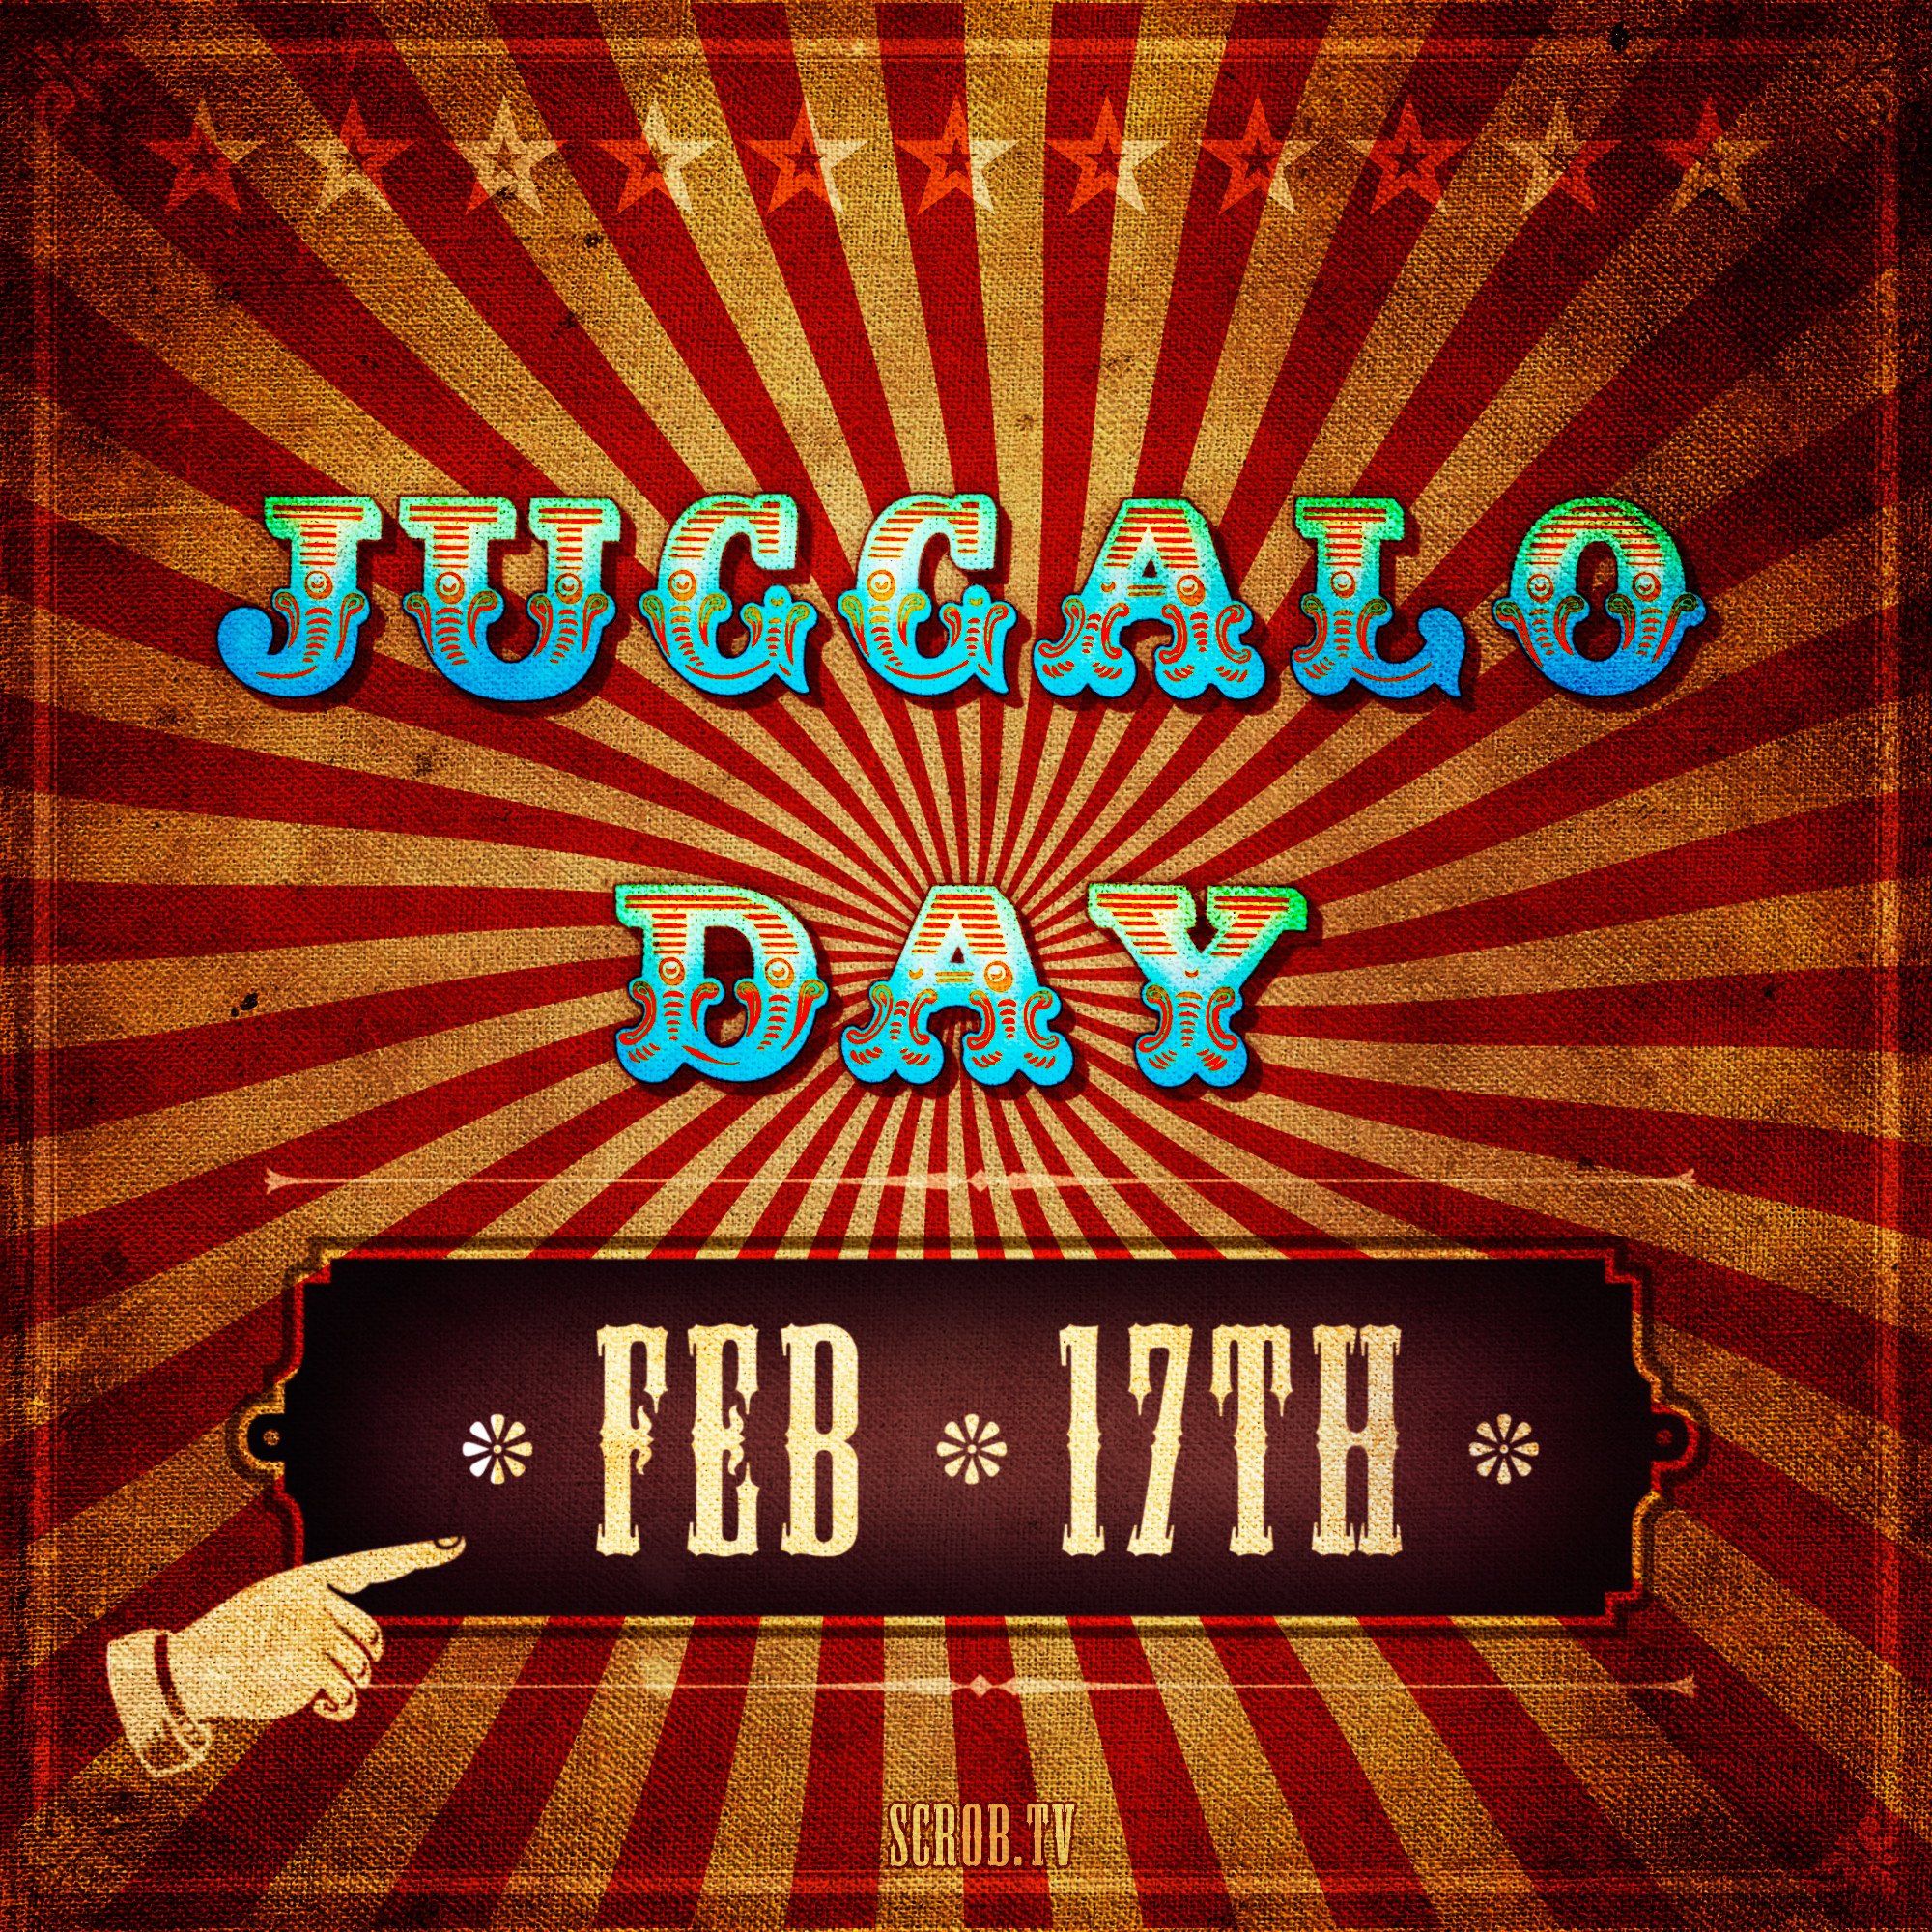 2000x2000 Juggalo Art: Juggalo Day Poster by SCROB